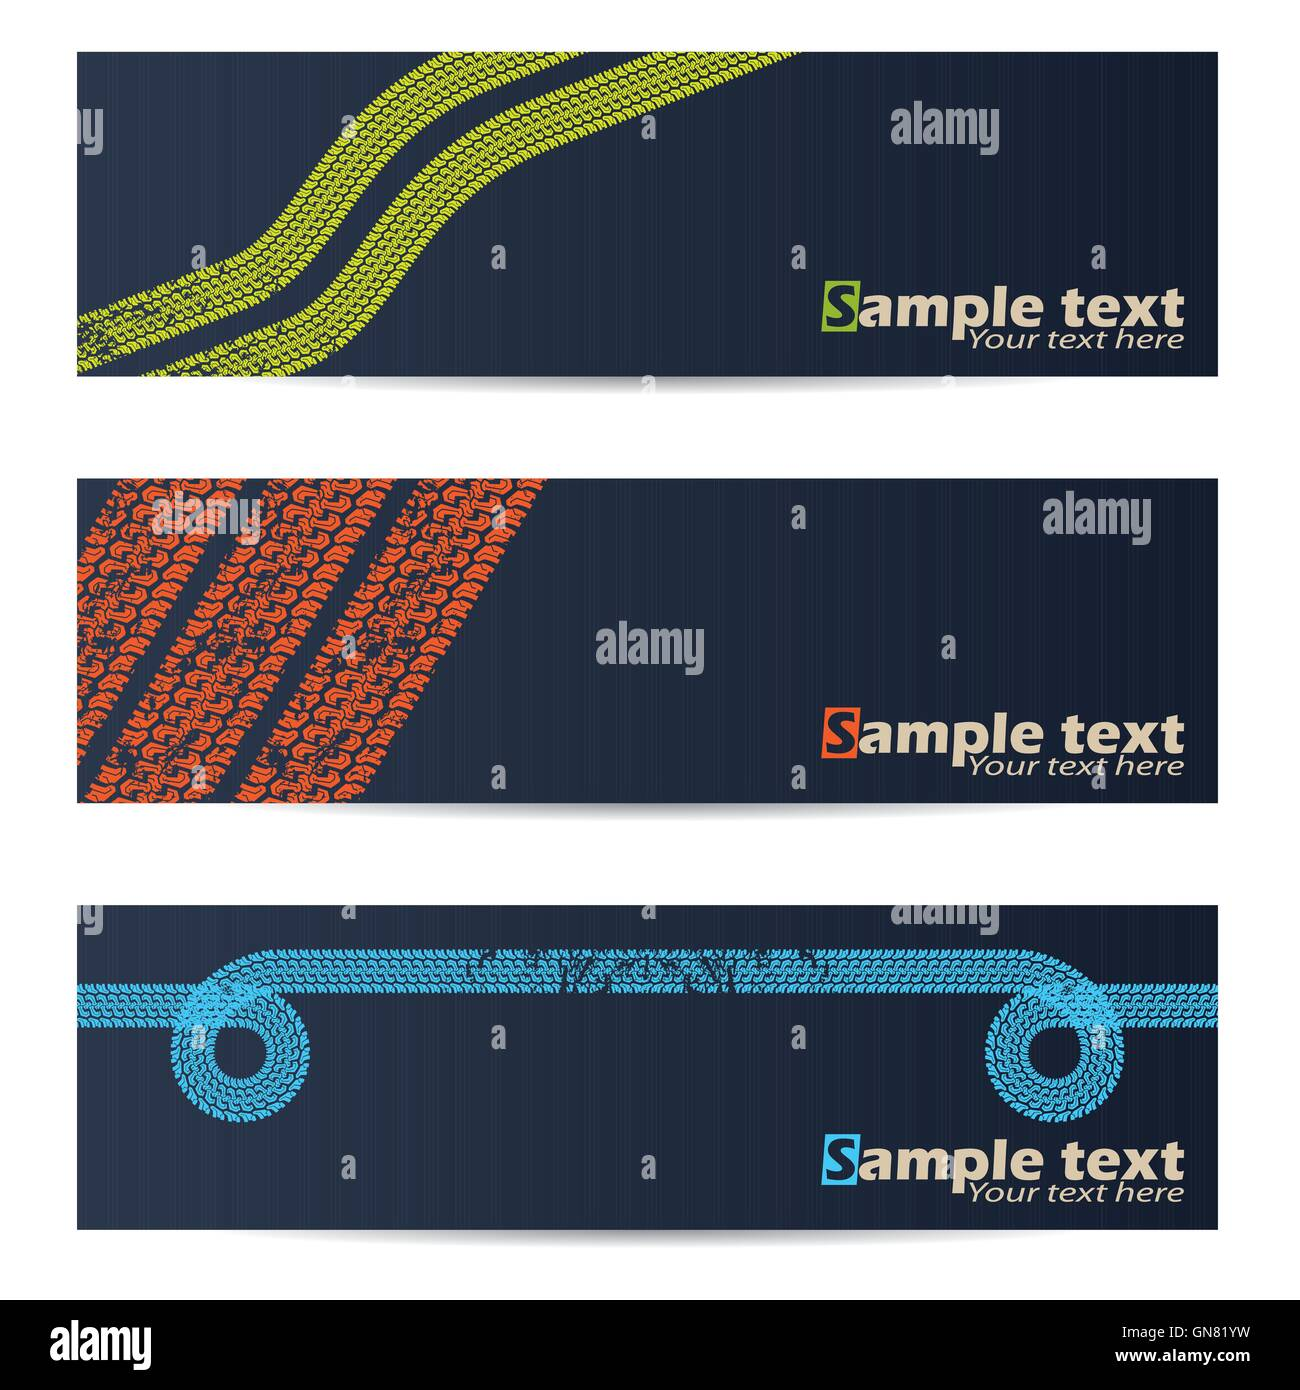 Cool tire track design banners - Stock Image